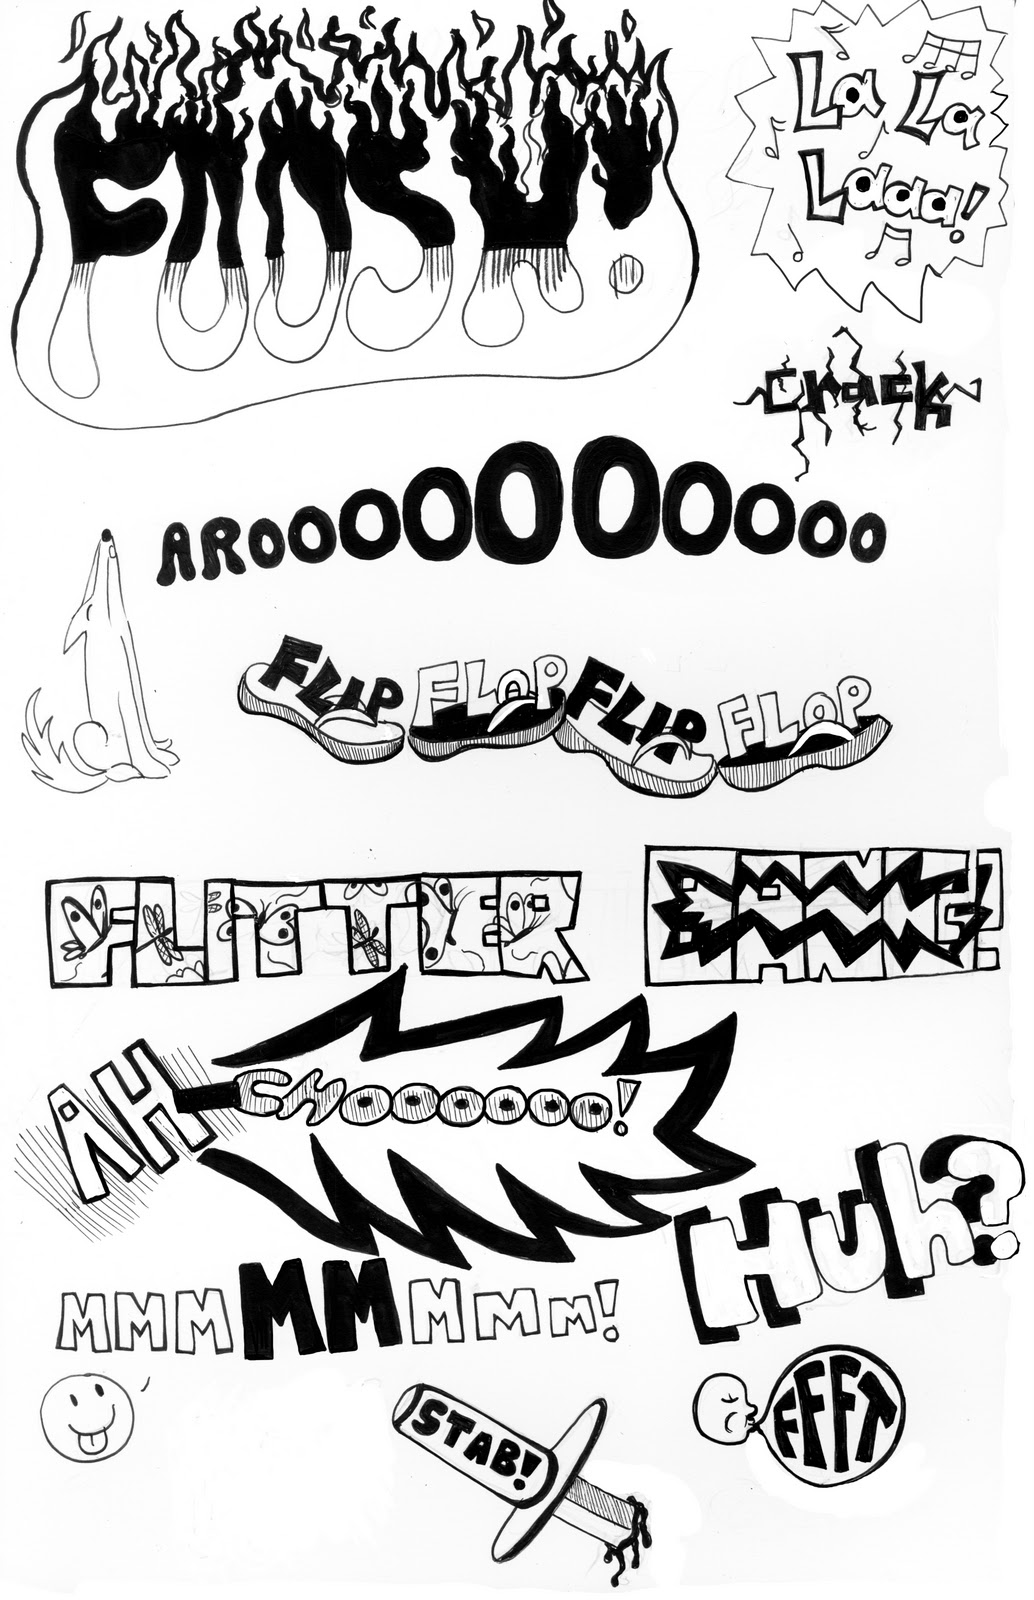 Drawing Lines Sound Effect : Various comic sound effects from hand lettering class